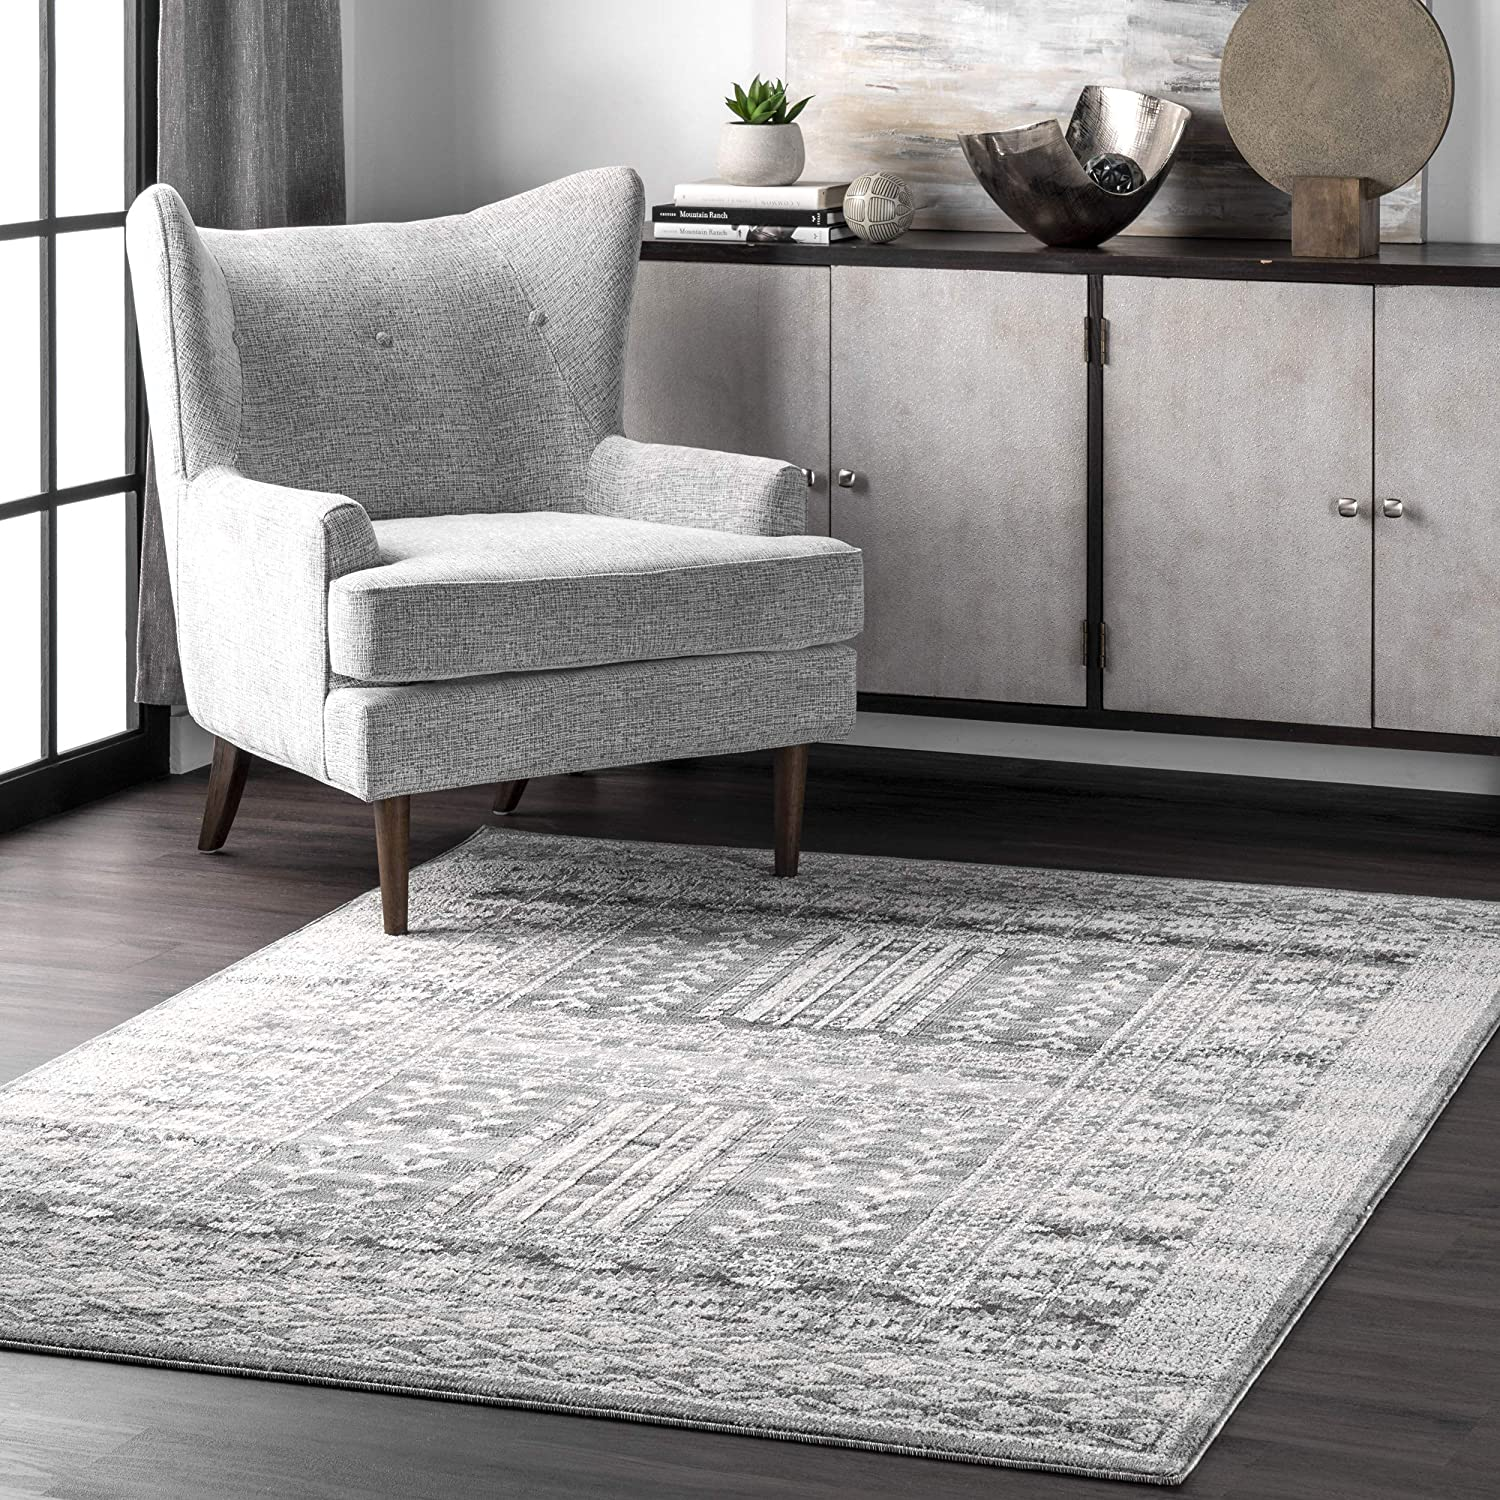 nuLOOM Melina Distressed Grecian All items free shipping Area Rug Grey x NEW before selling ☆ 5